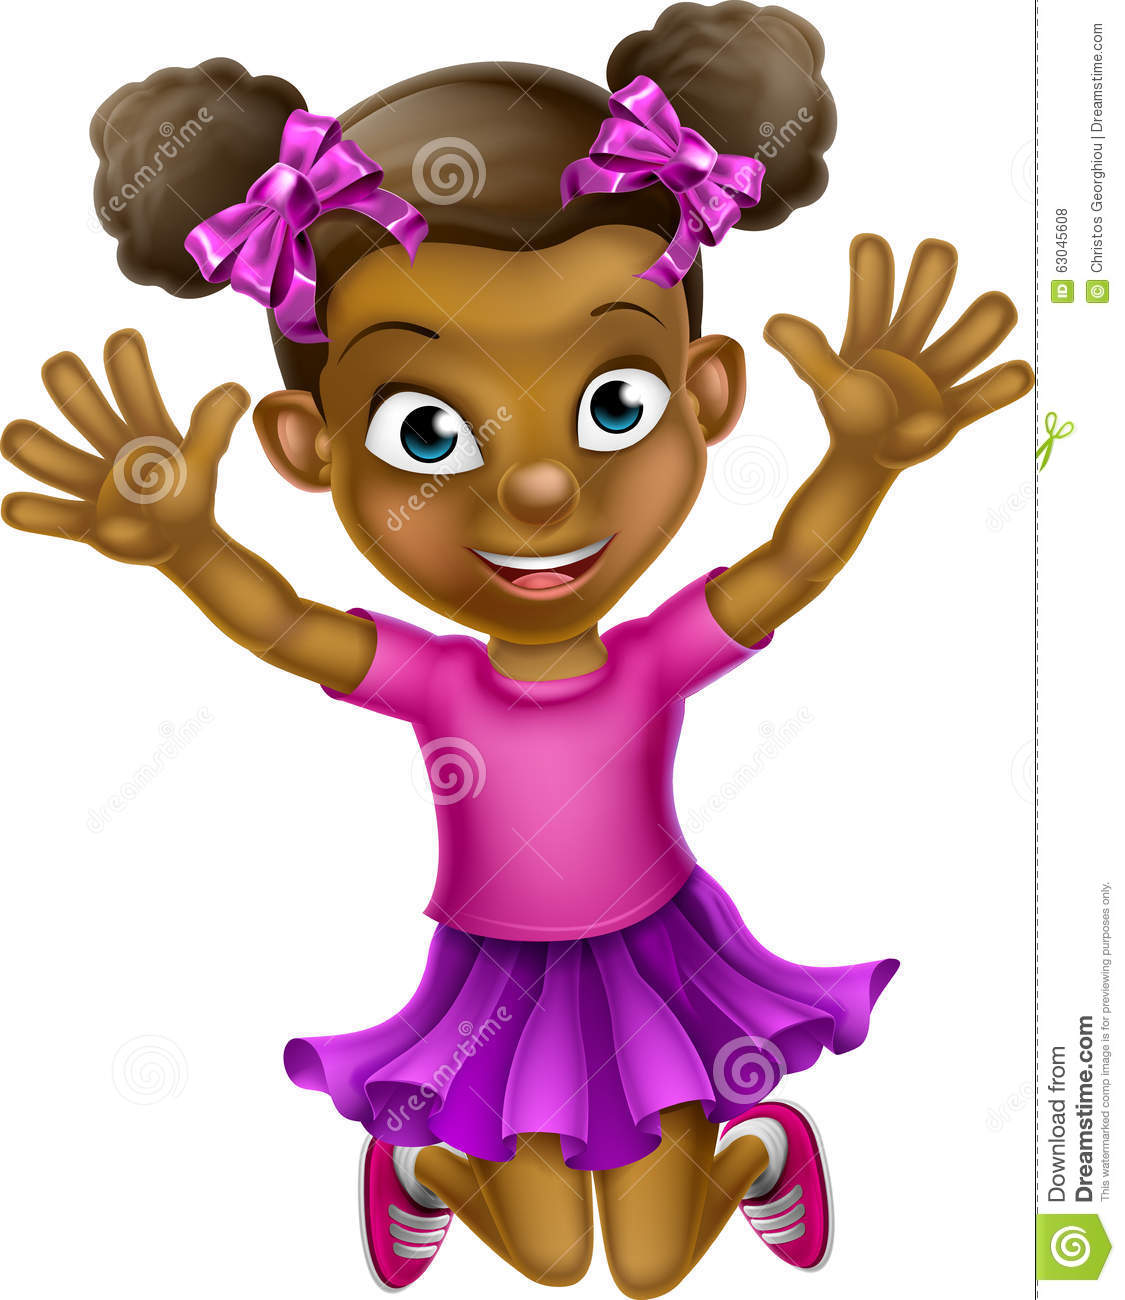 happy cartoon black girl jumping stock vector illustration of afro rh dreamstime com black girl cartoon character tumblr cute black girl cartoon characters